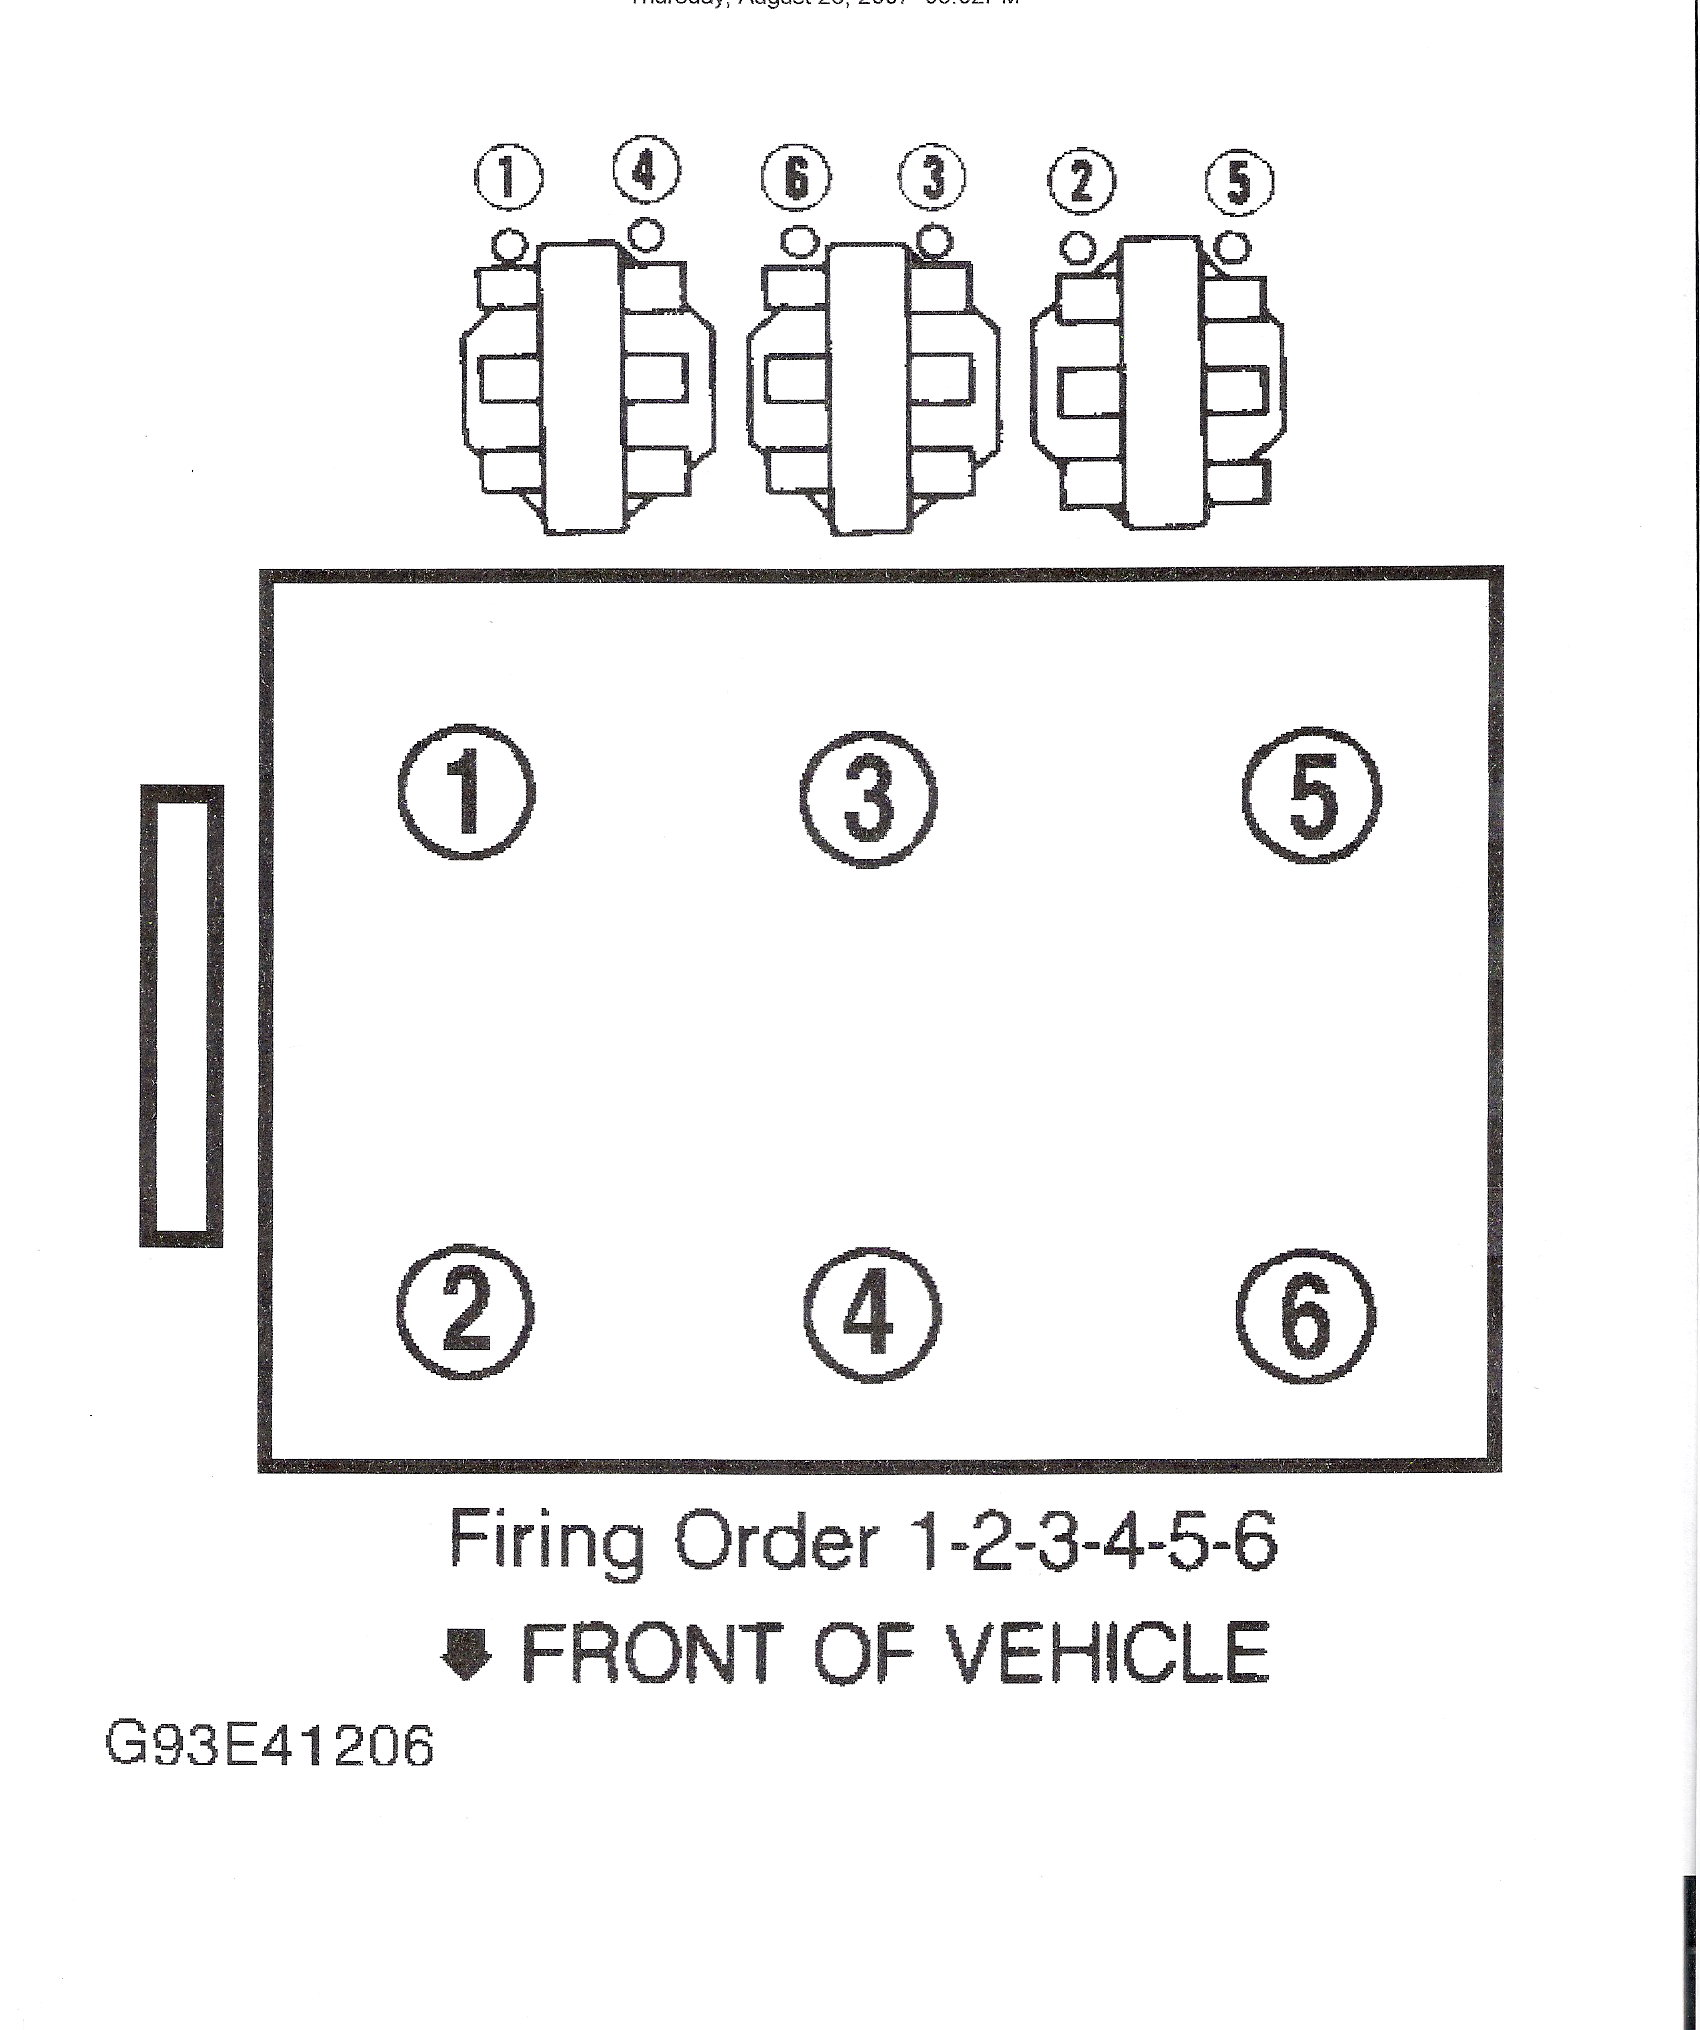 1990 nissan 300zx fuse panel diagram wiring schematic firing order for a 1999 buick century 3.1 1990 buick century firing order diagram wiring schematic #10